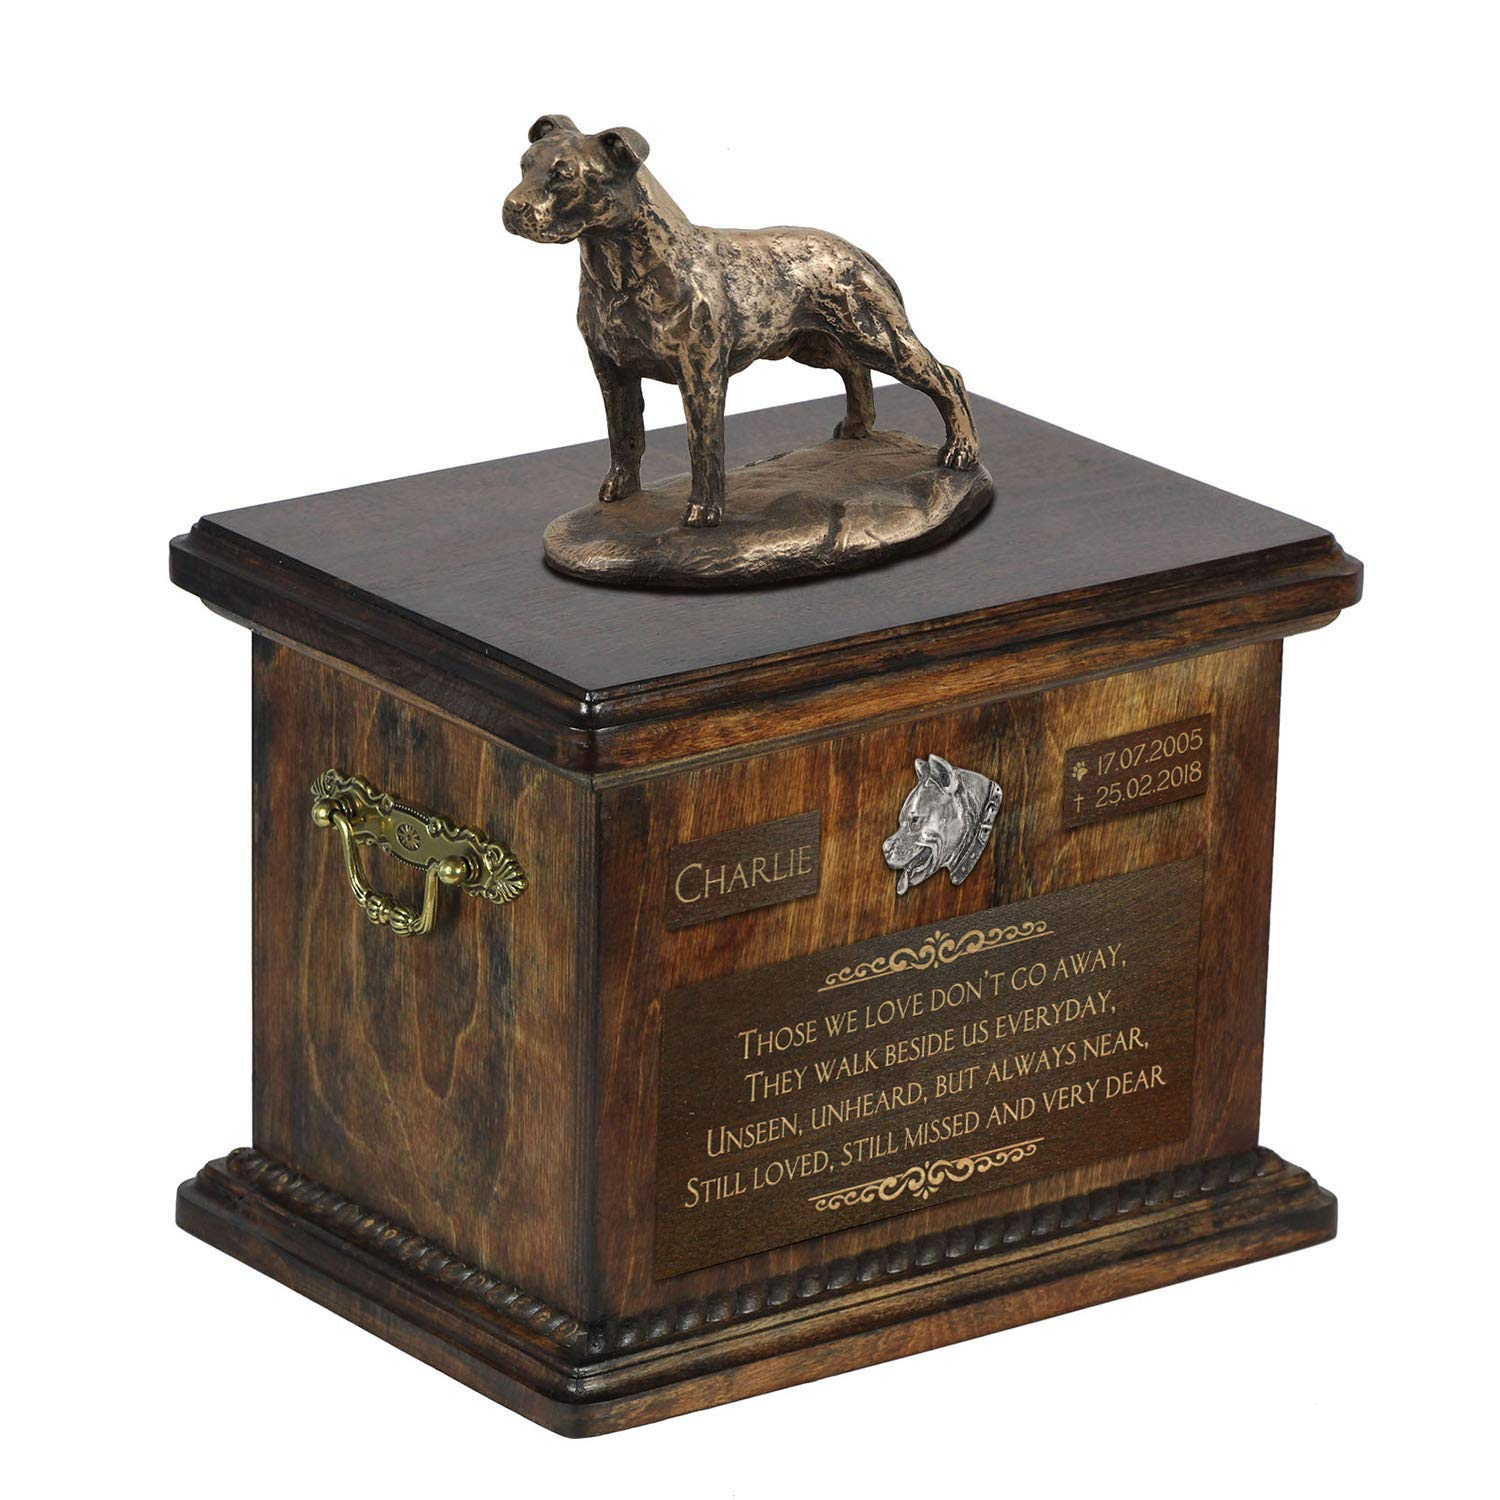 American Staffordshire Terrier uncropped, Urn for Dog Ashes Memorial with Statue, Pet's Name and Quote – ArtDog Personalized